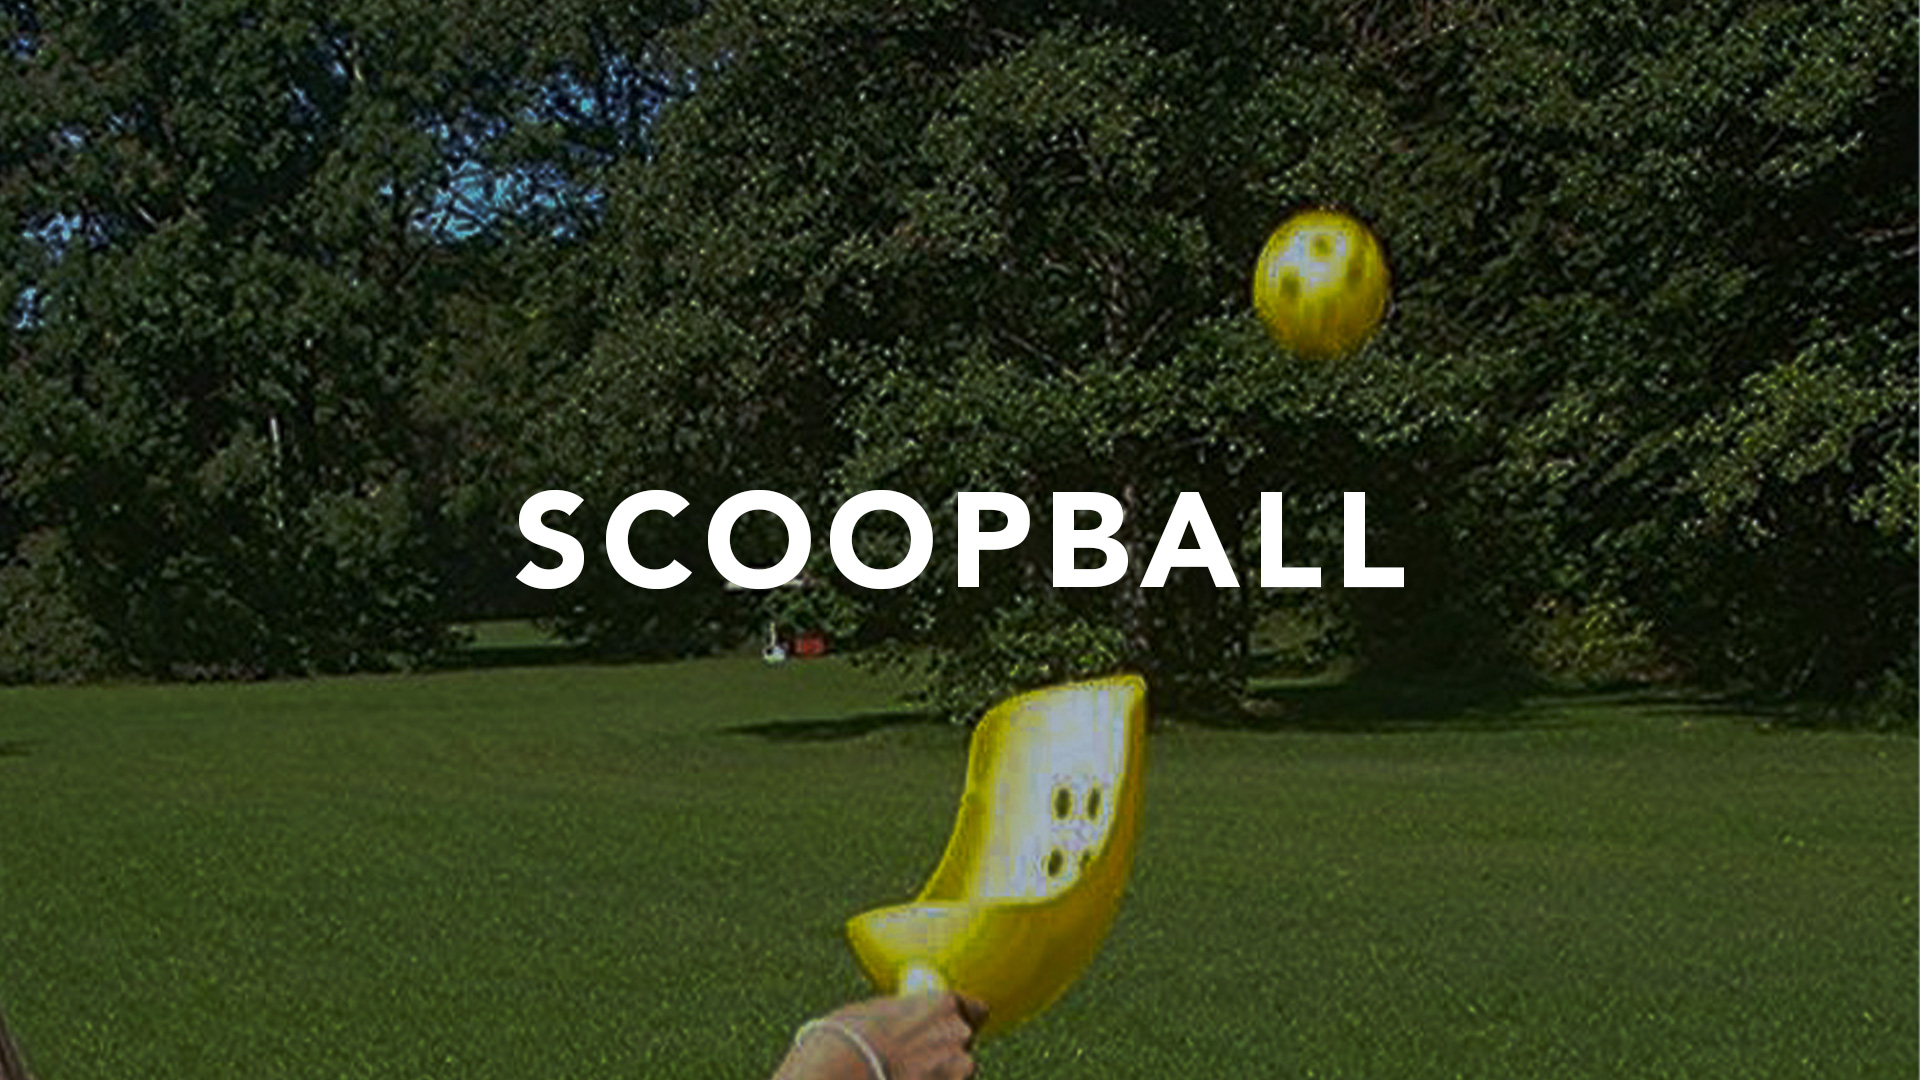 Scoopball